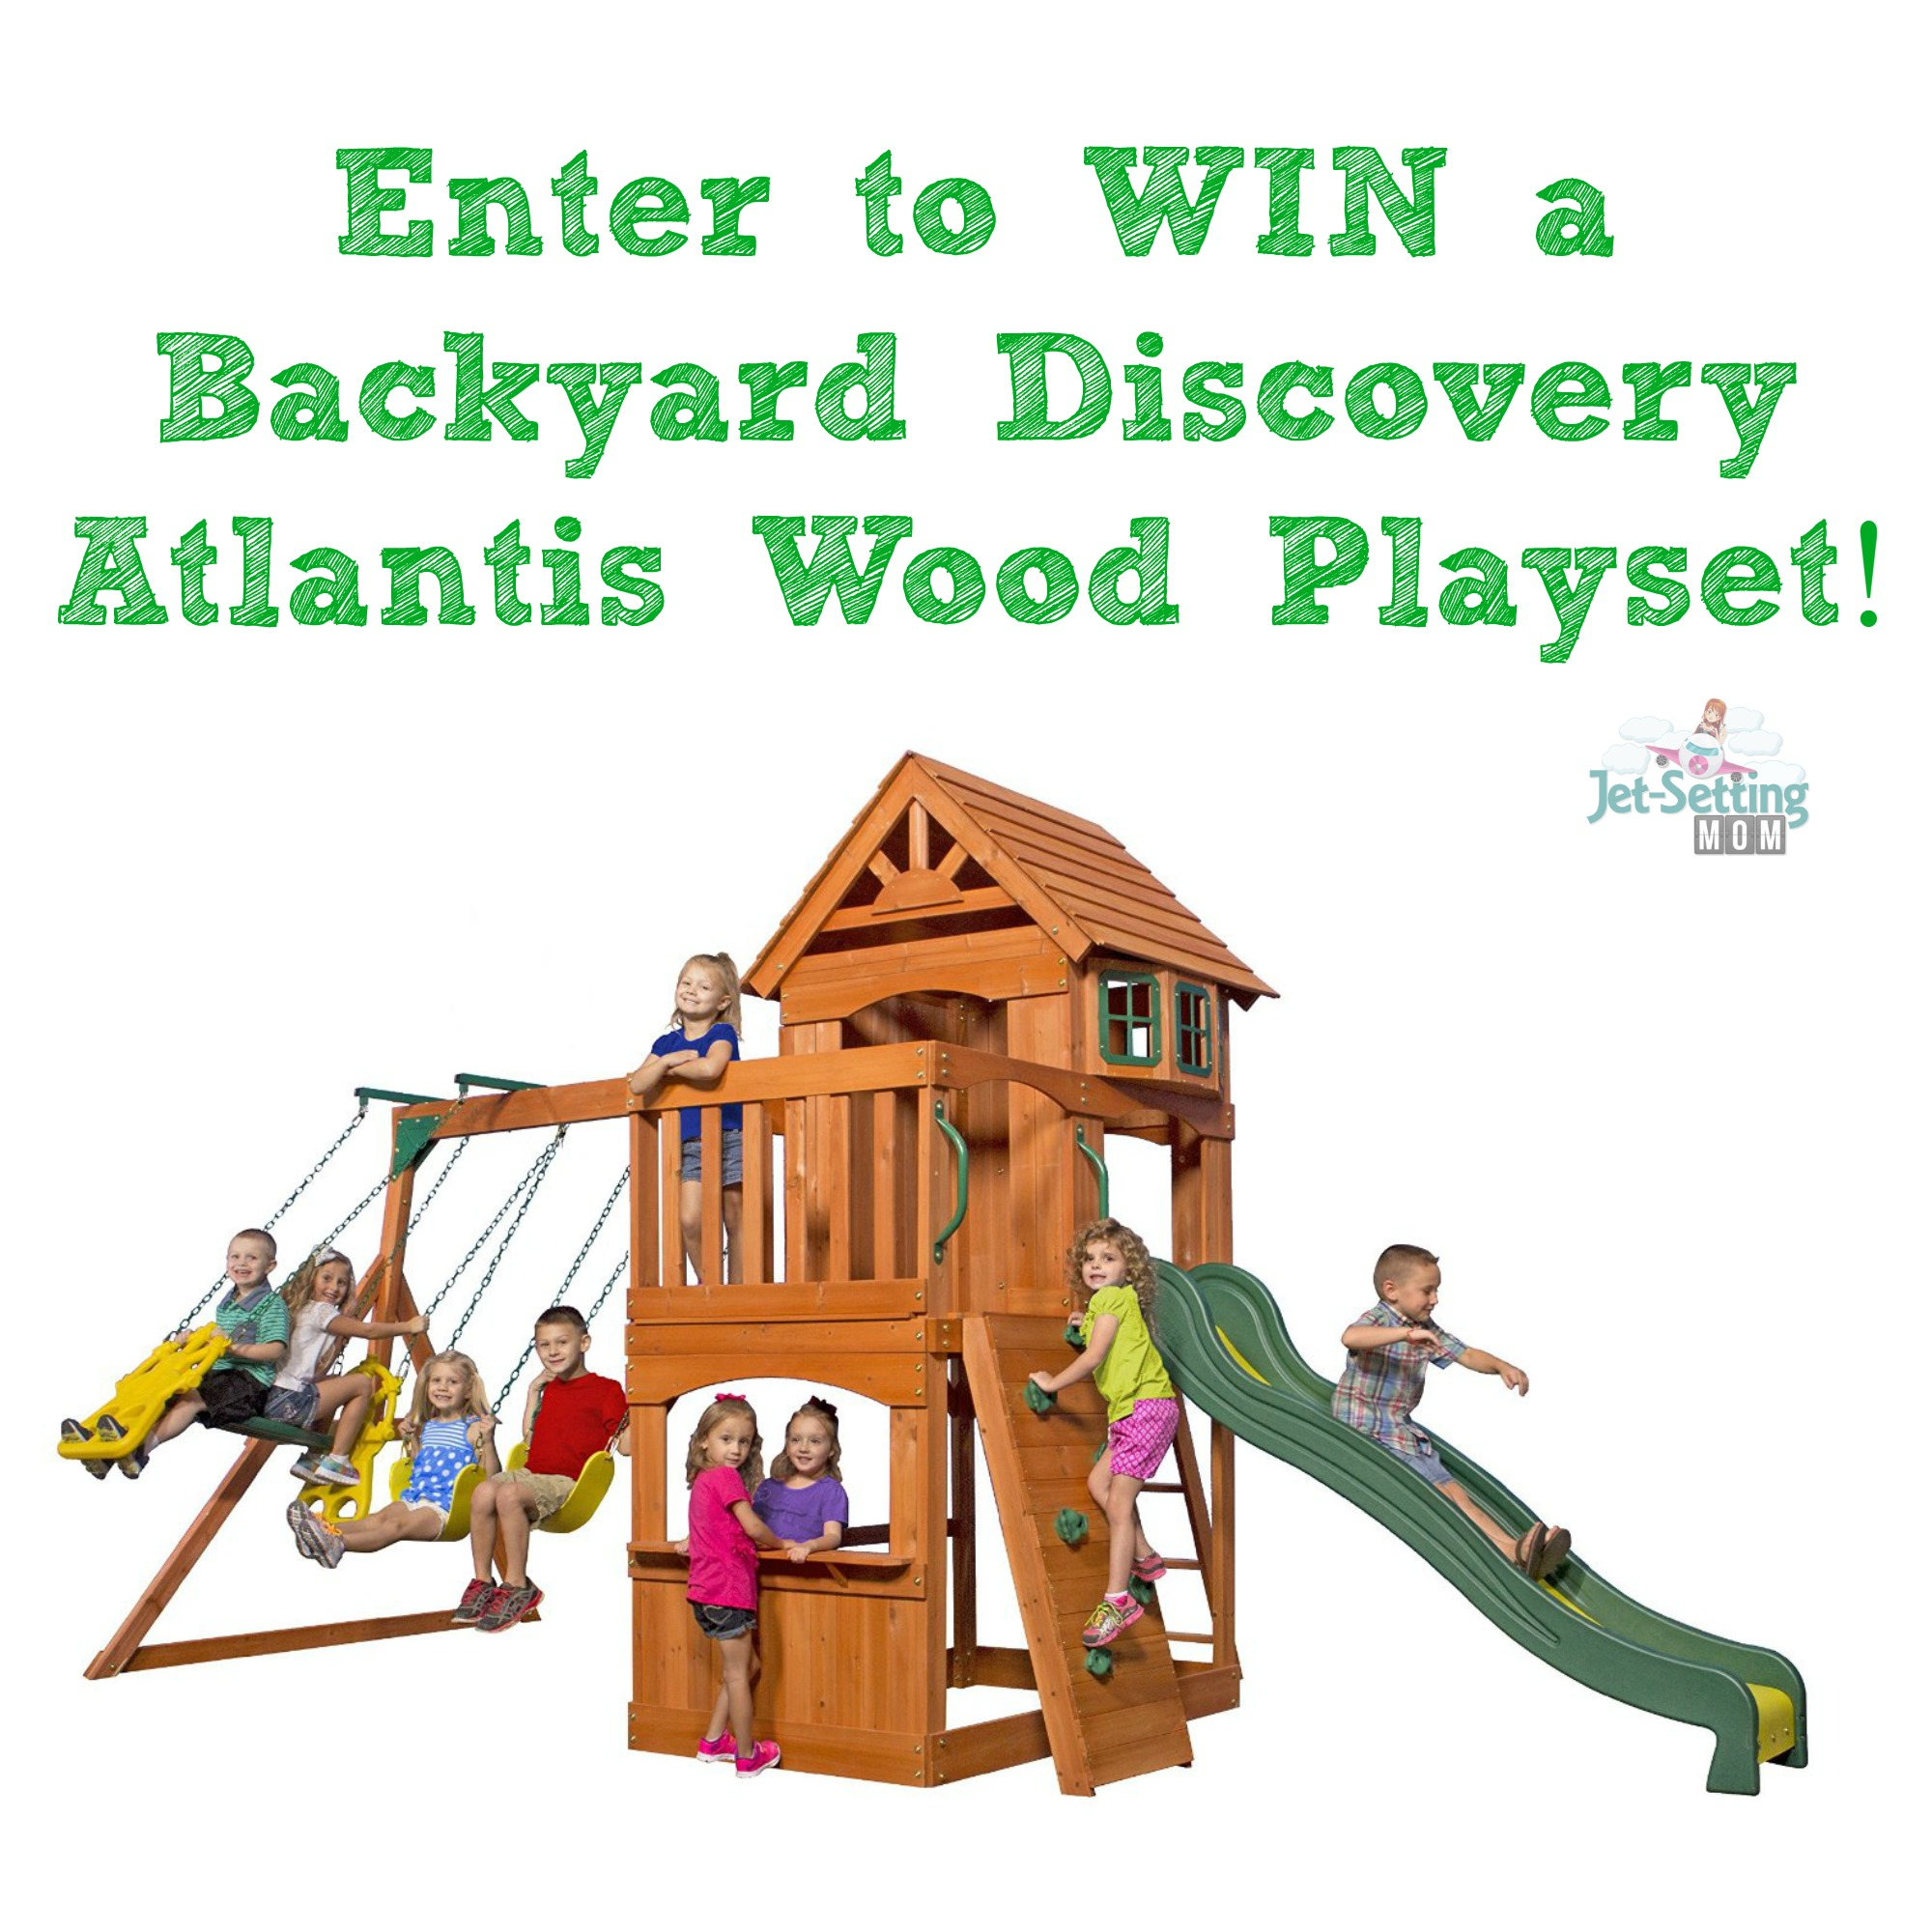 Looking for a cute playground? Enter to win a Backyard Discover Atlantis Wood Playset here!